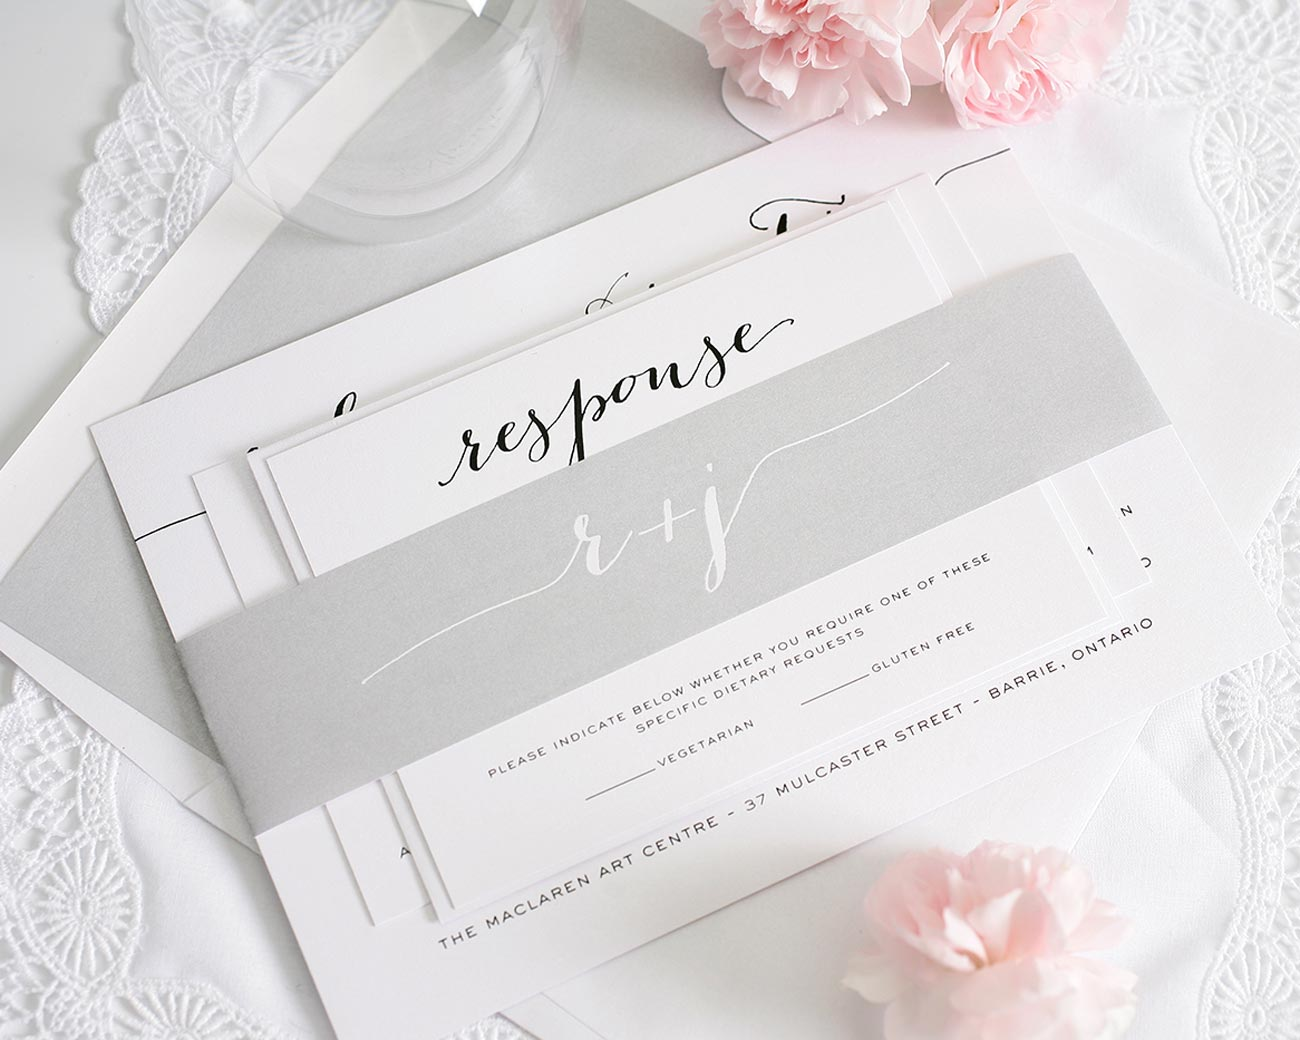 Simple and Elegant Wedding Invitations in Gray with Bold Calligraphy